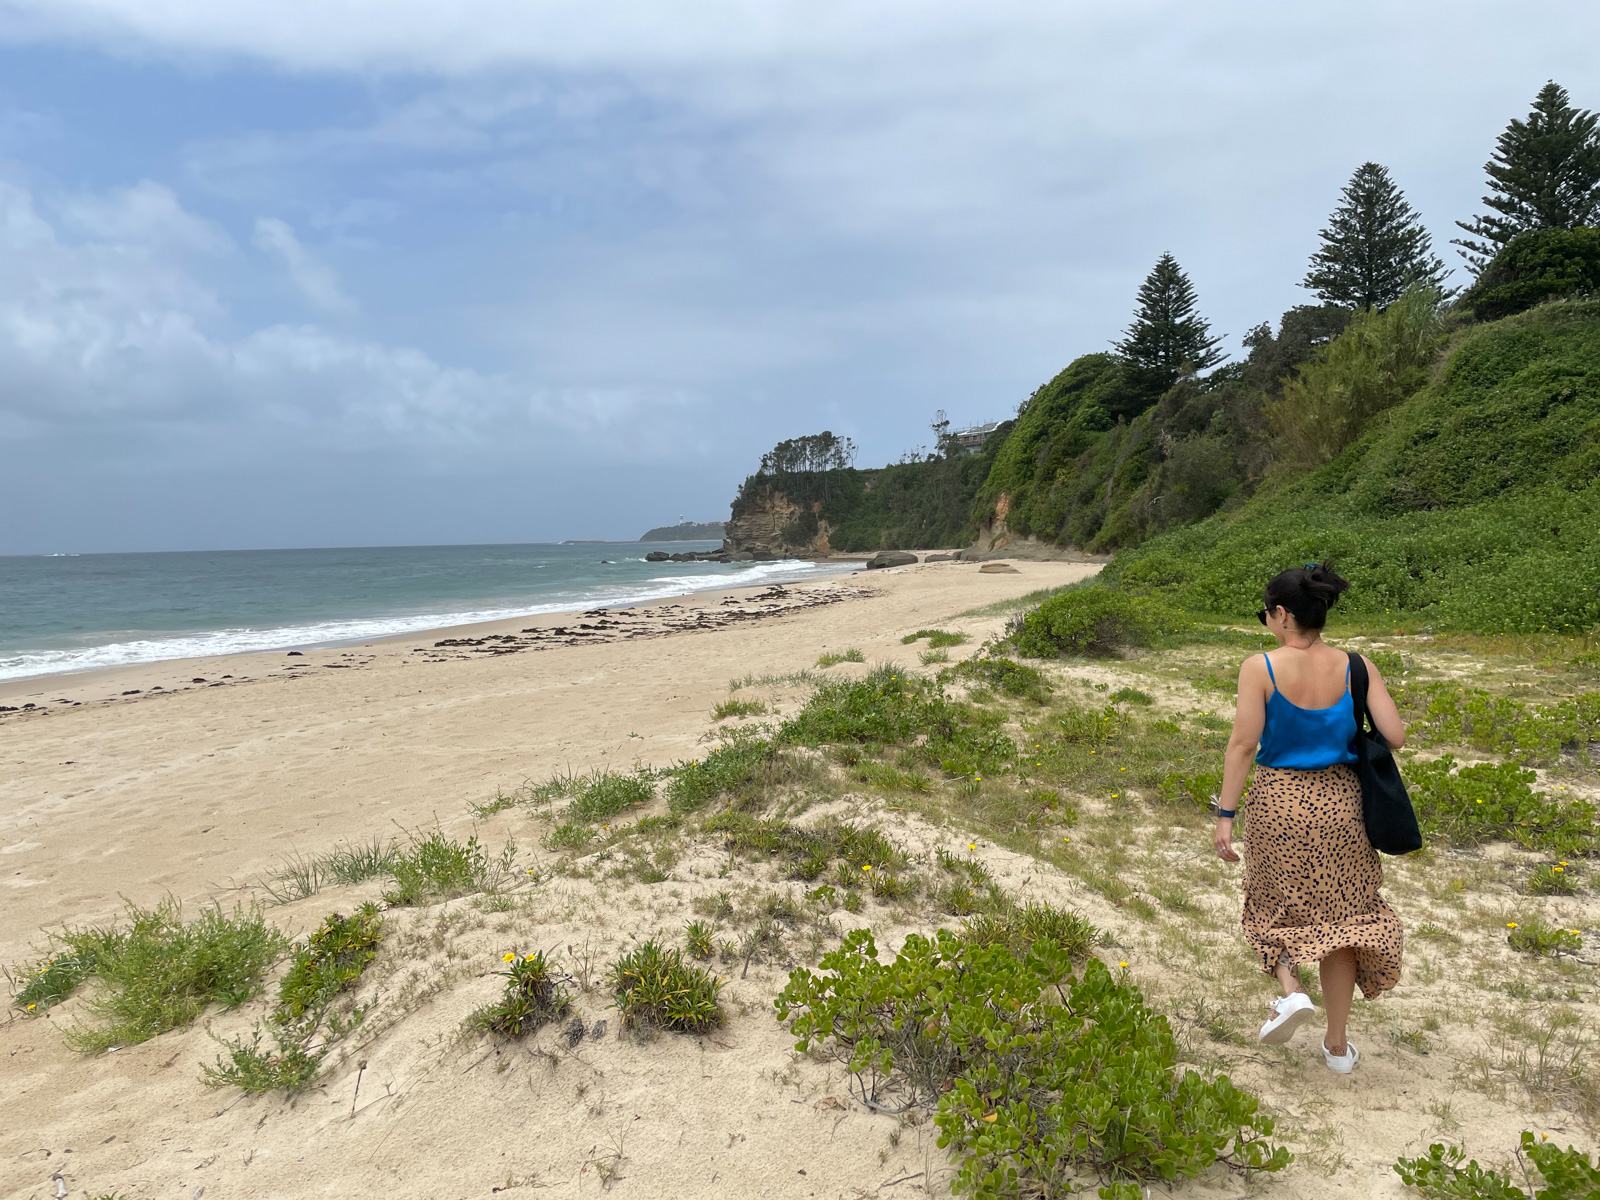 A view of a beach, with grass growing out of the sand in the foreground. A woman wearing a blue top and an animal print skirt walks towards the bare sand. The sky is a bit cloudy.